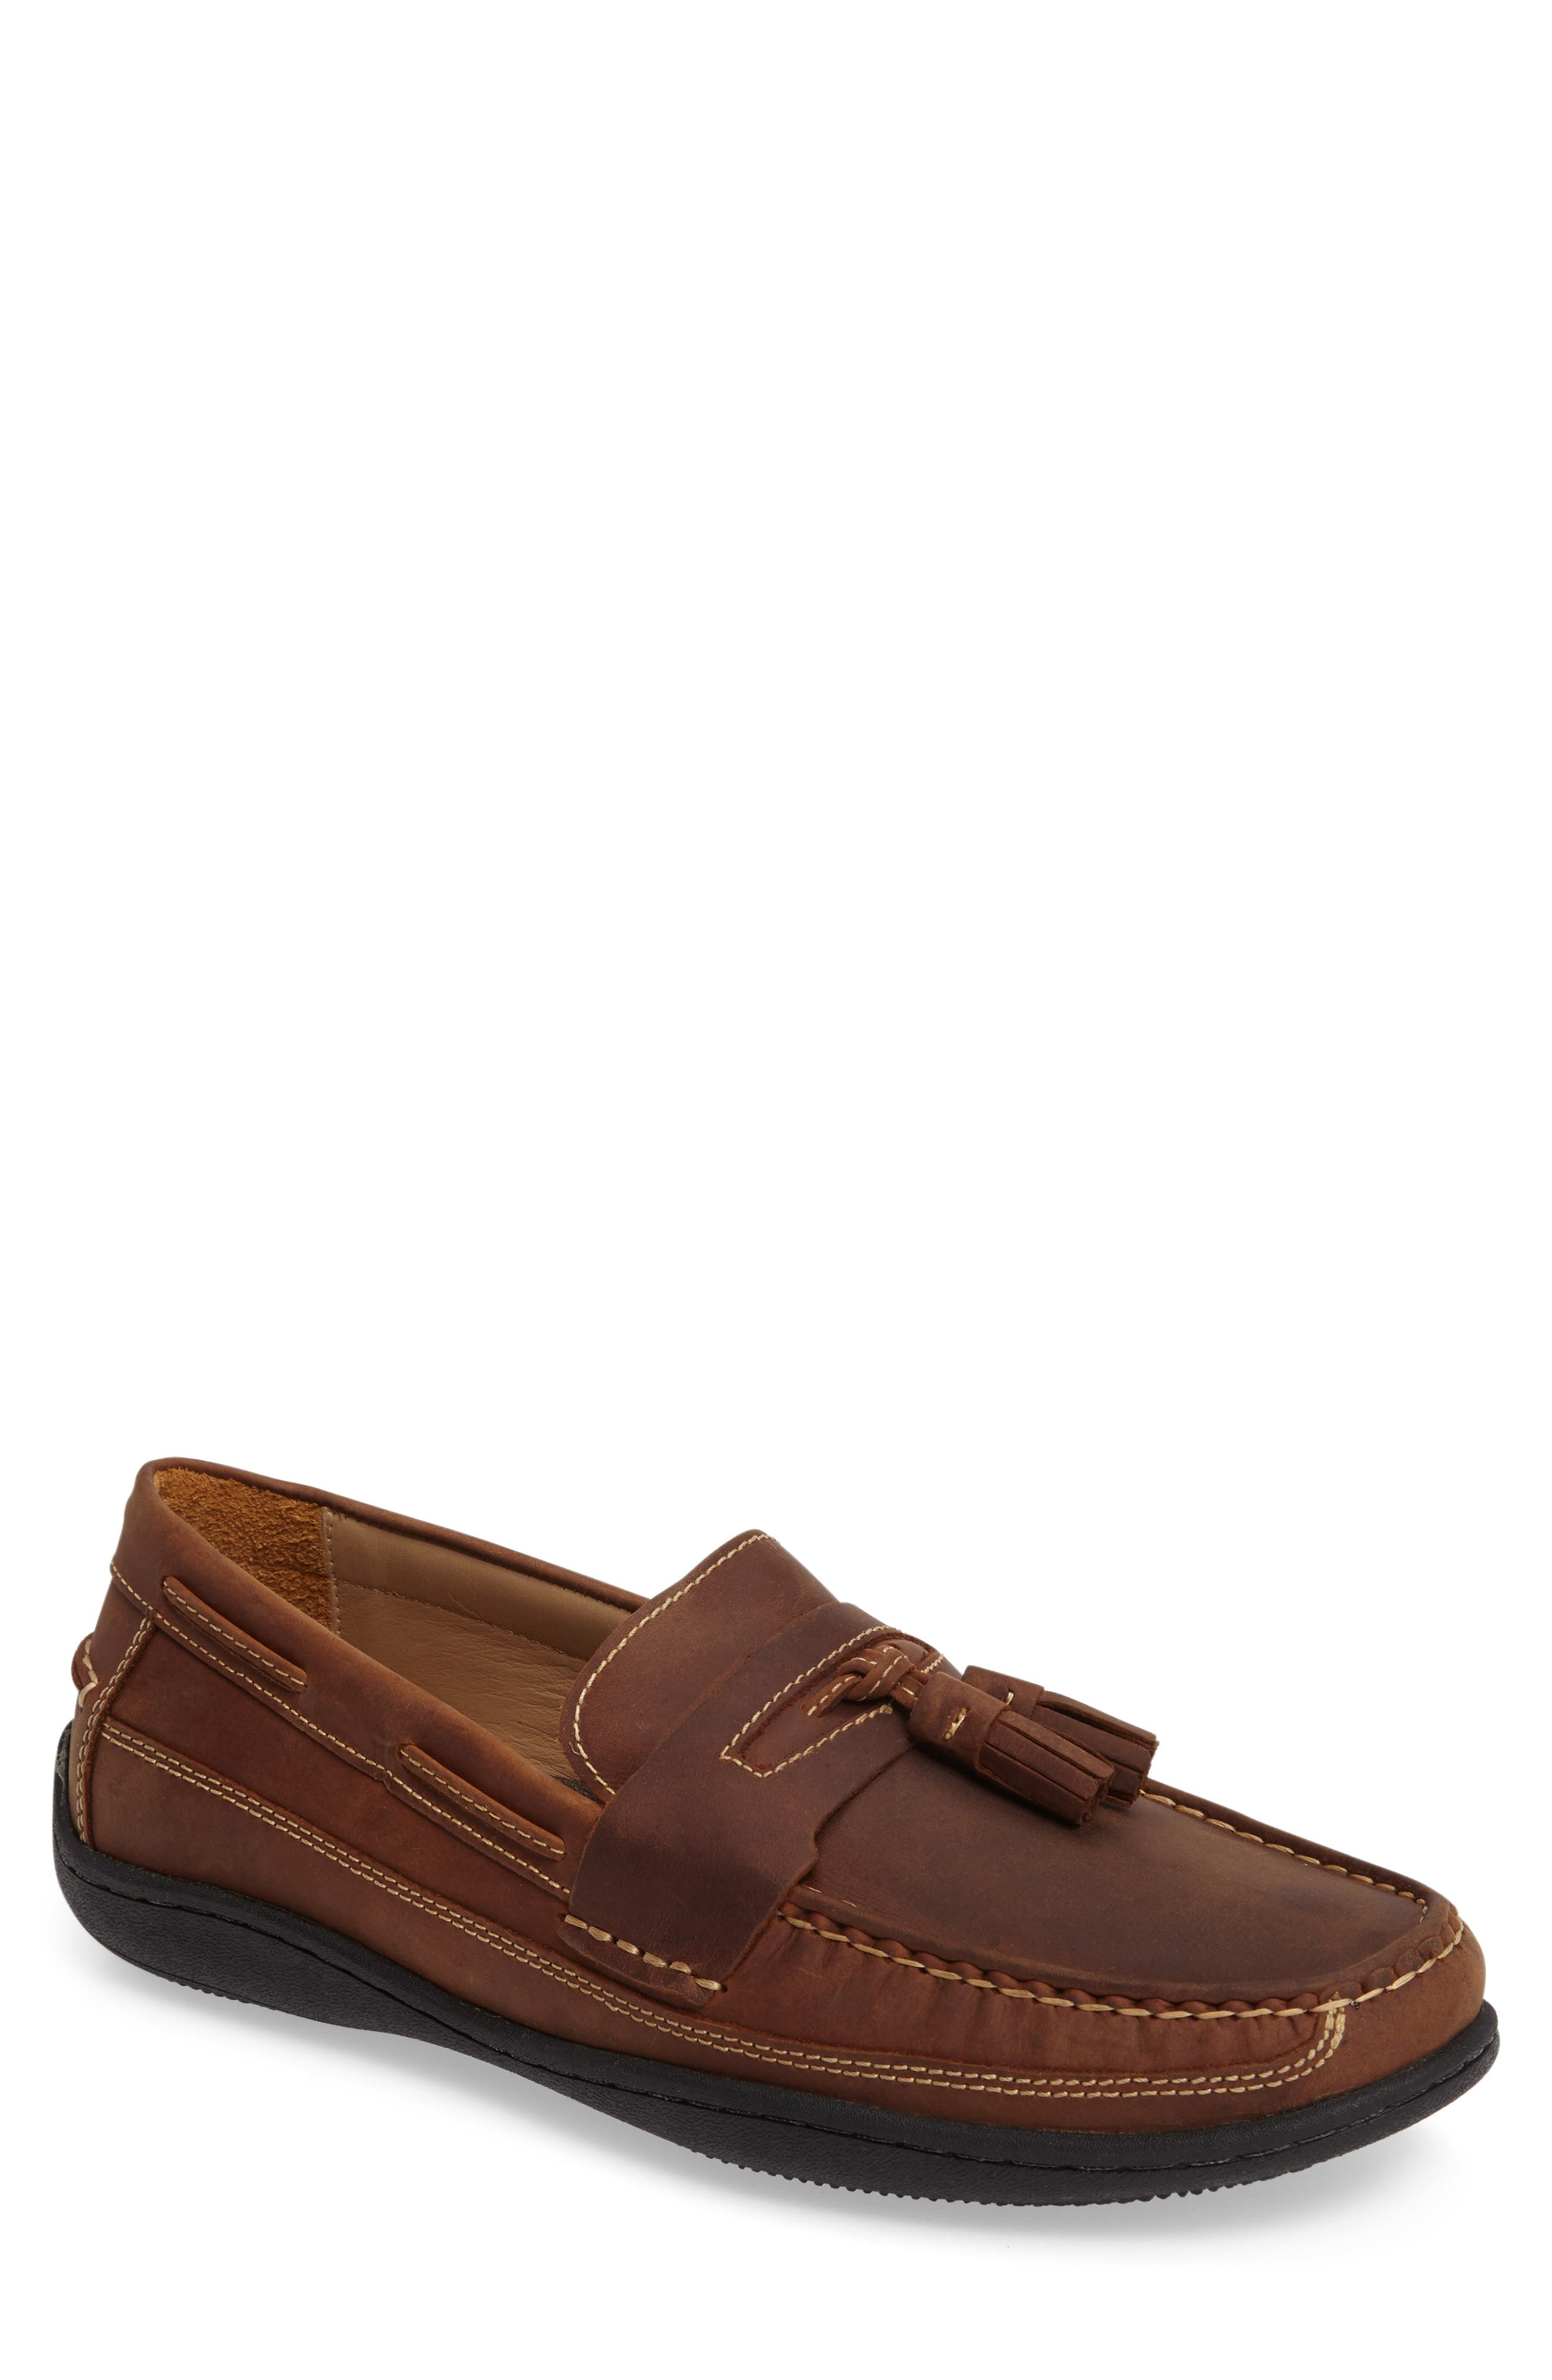 Fowler Tasseled Loafer,                         Main,                         color, TAN LEATHER